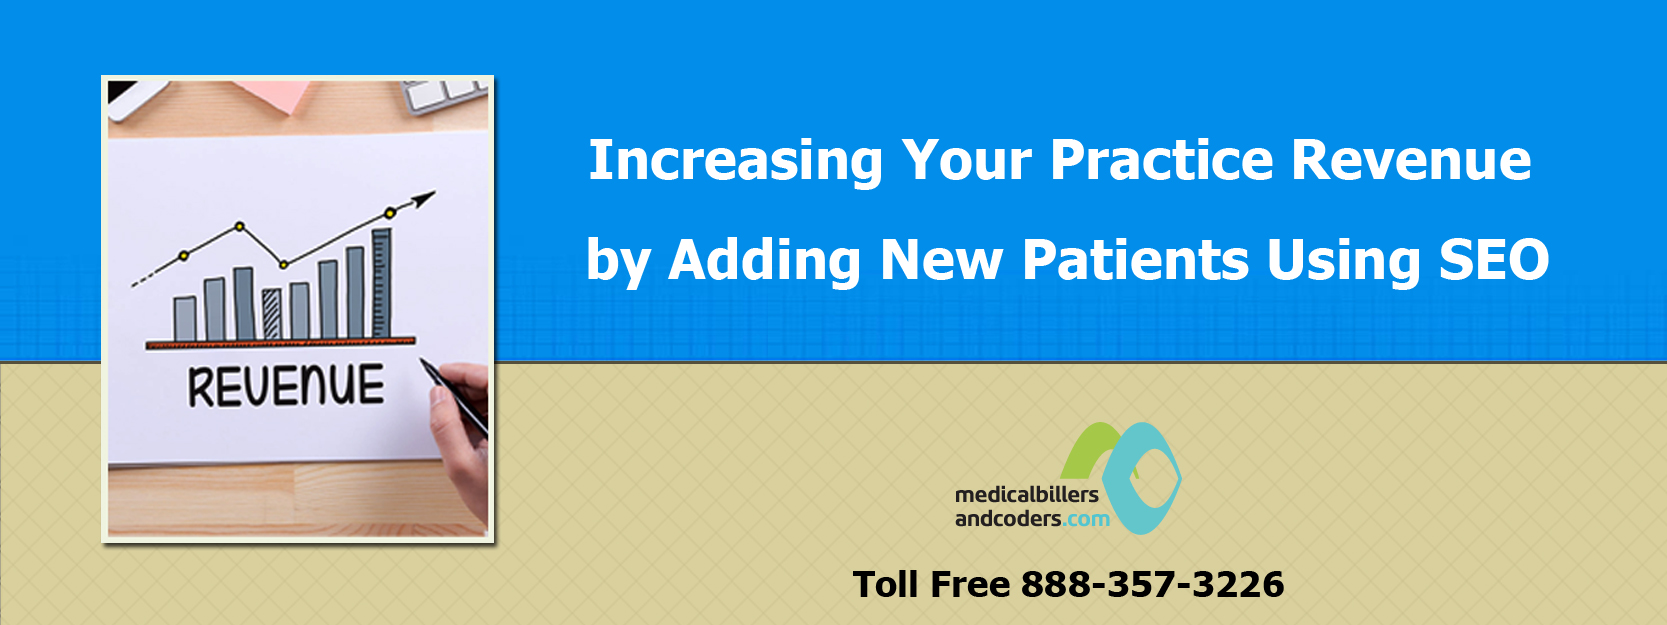 Increasing Your Practice Revenue by Adding New Patients Using SEO